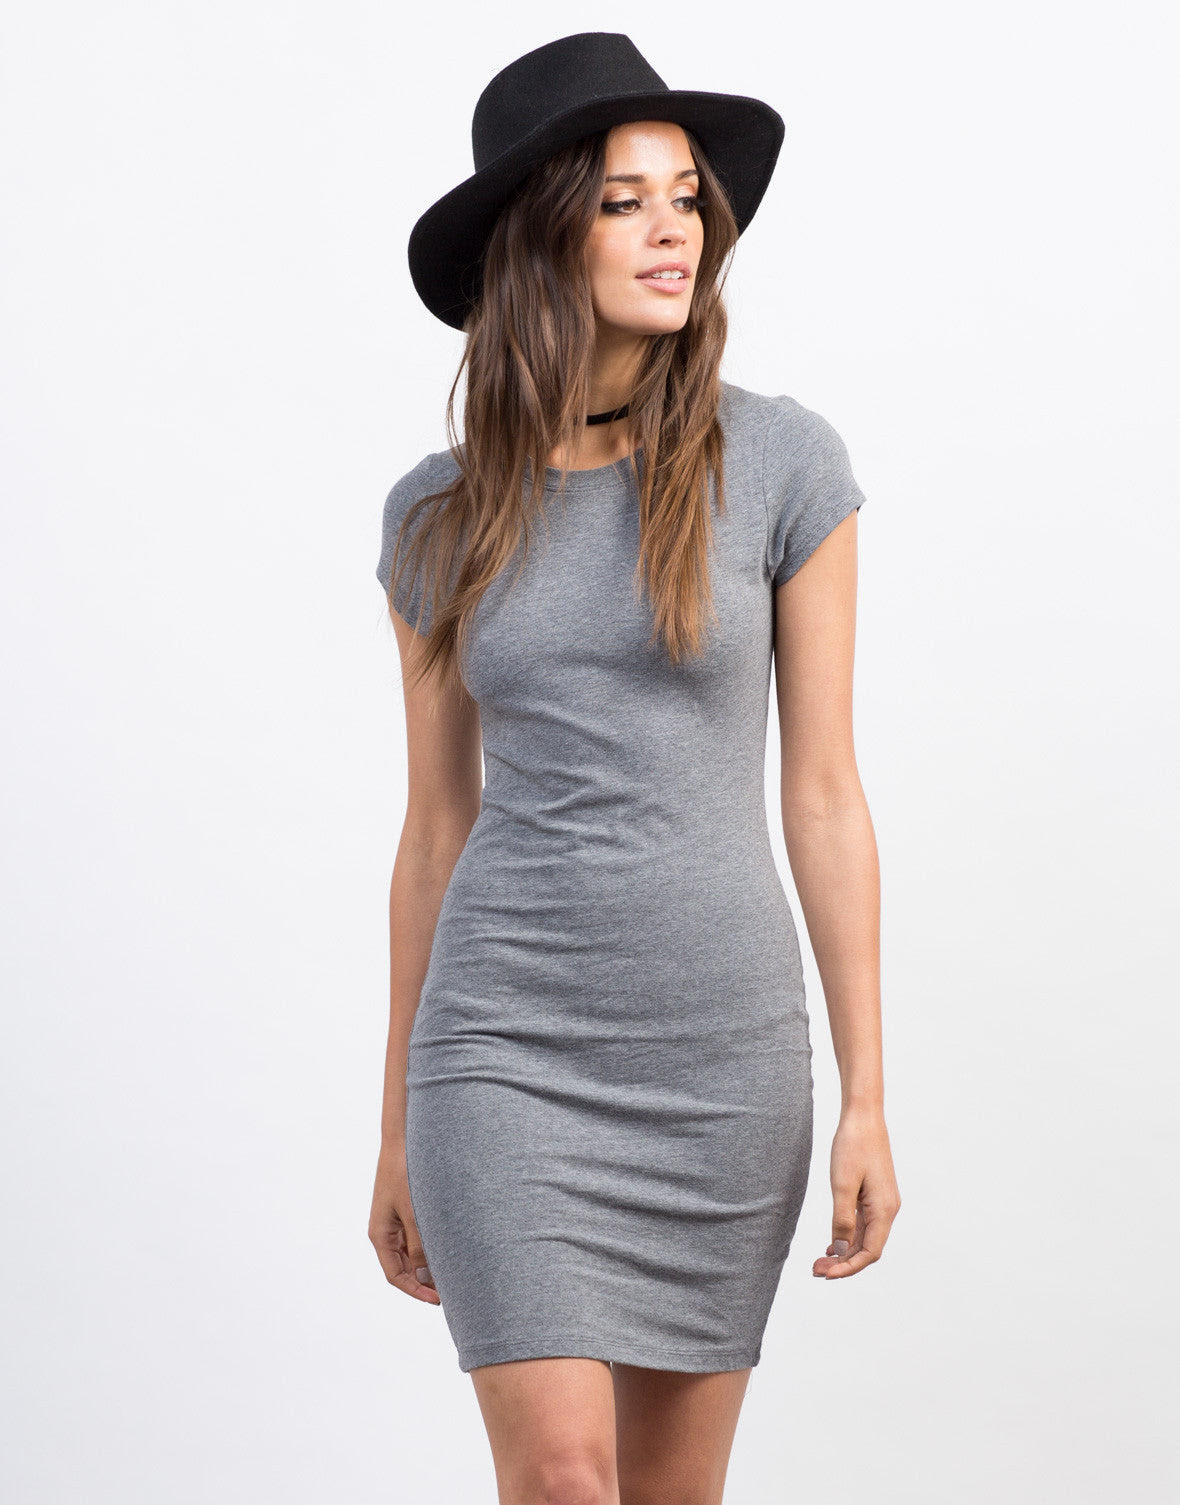 Bodycon dress out of a t shirt hop with short